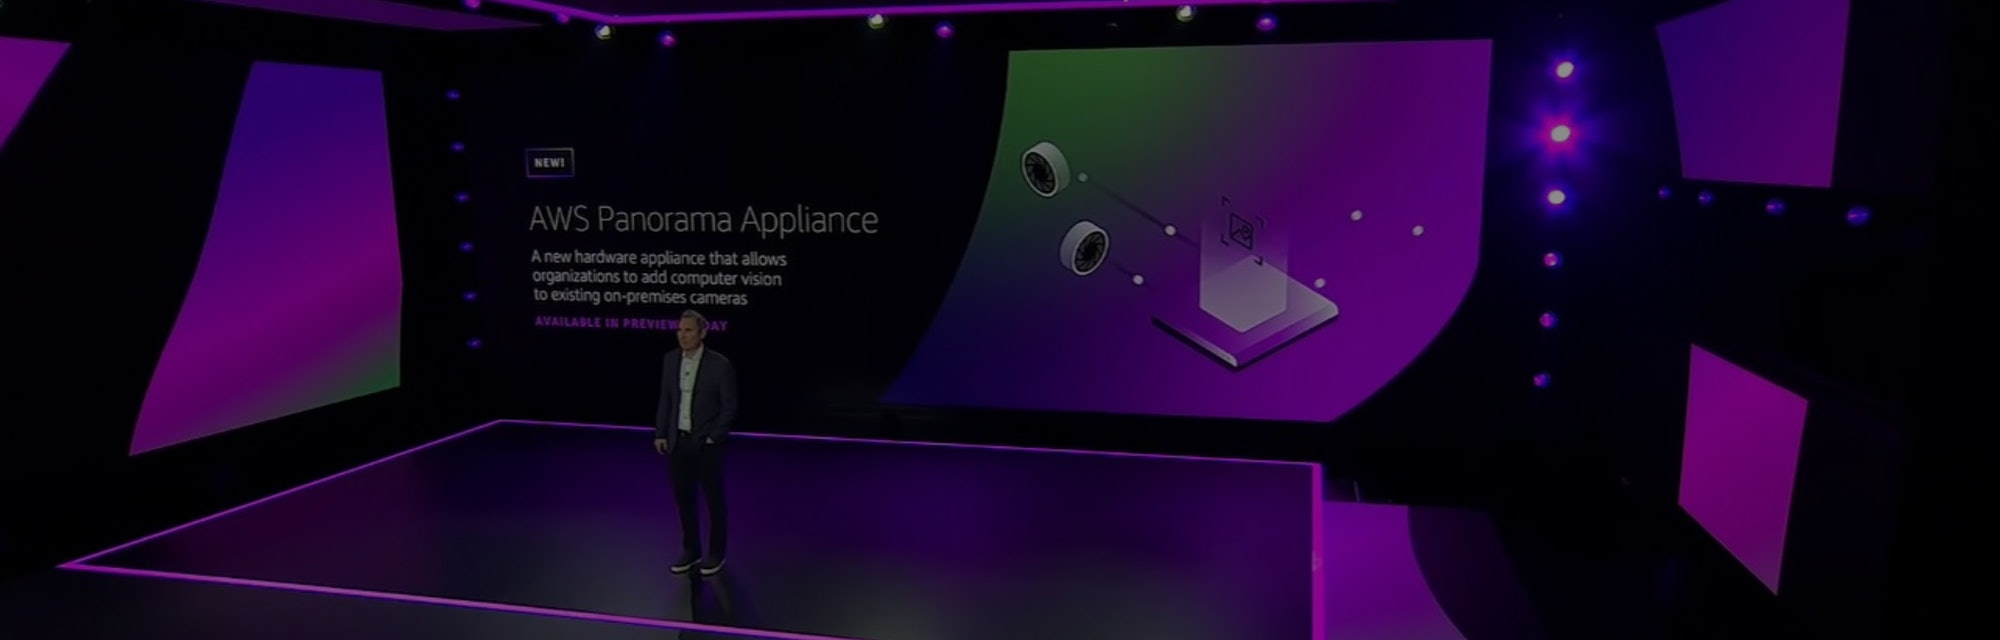 Amazon Panorama adds machine learning smarts to existing cameras.